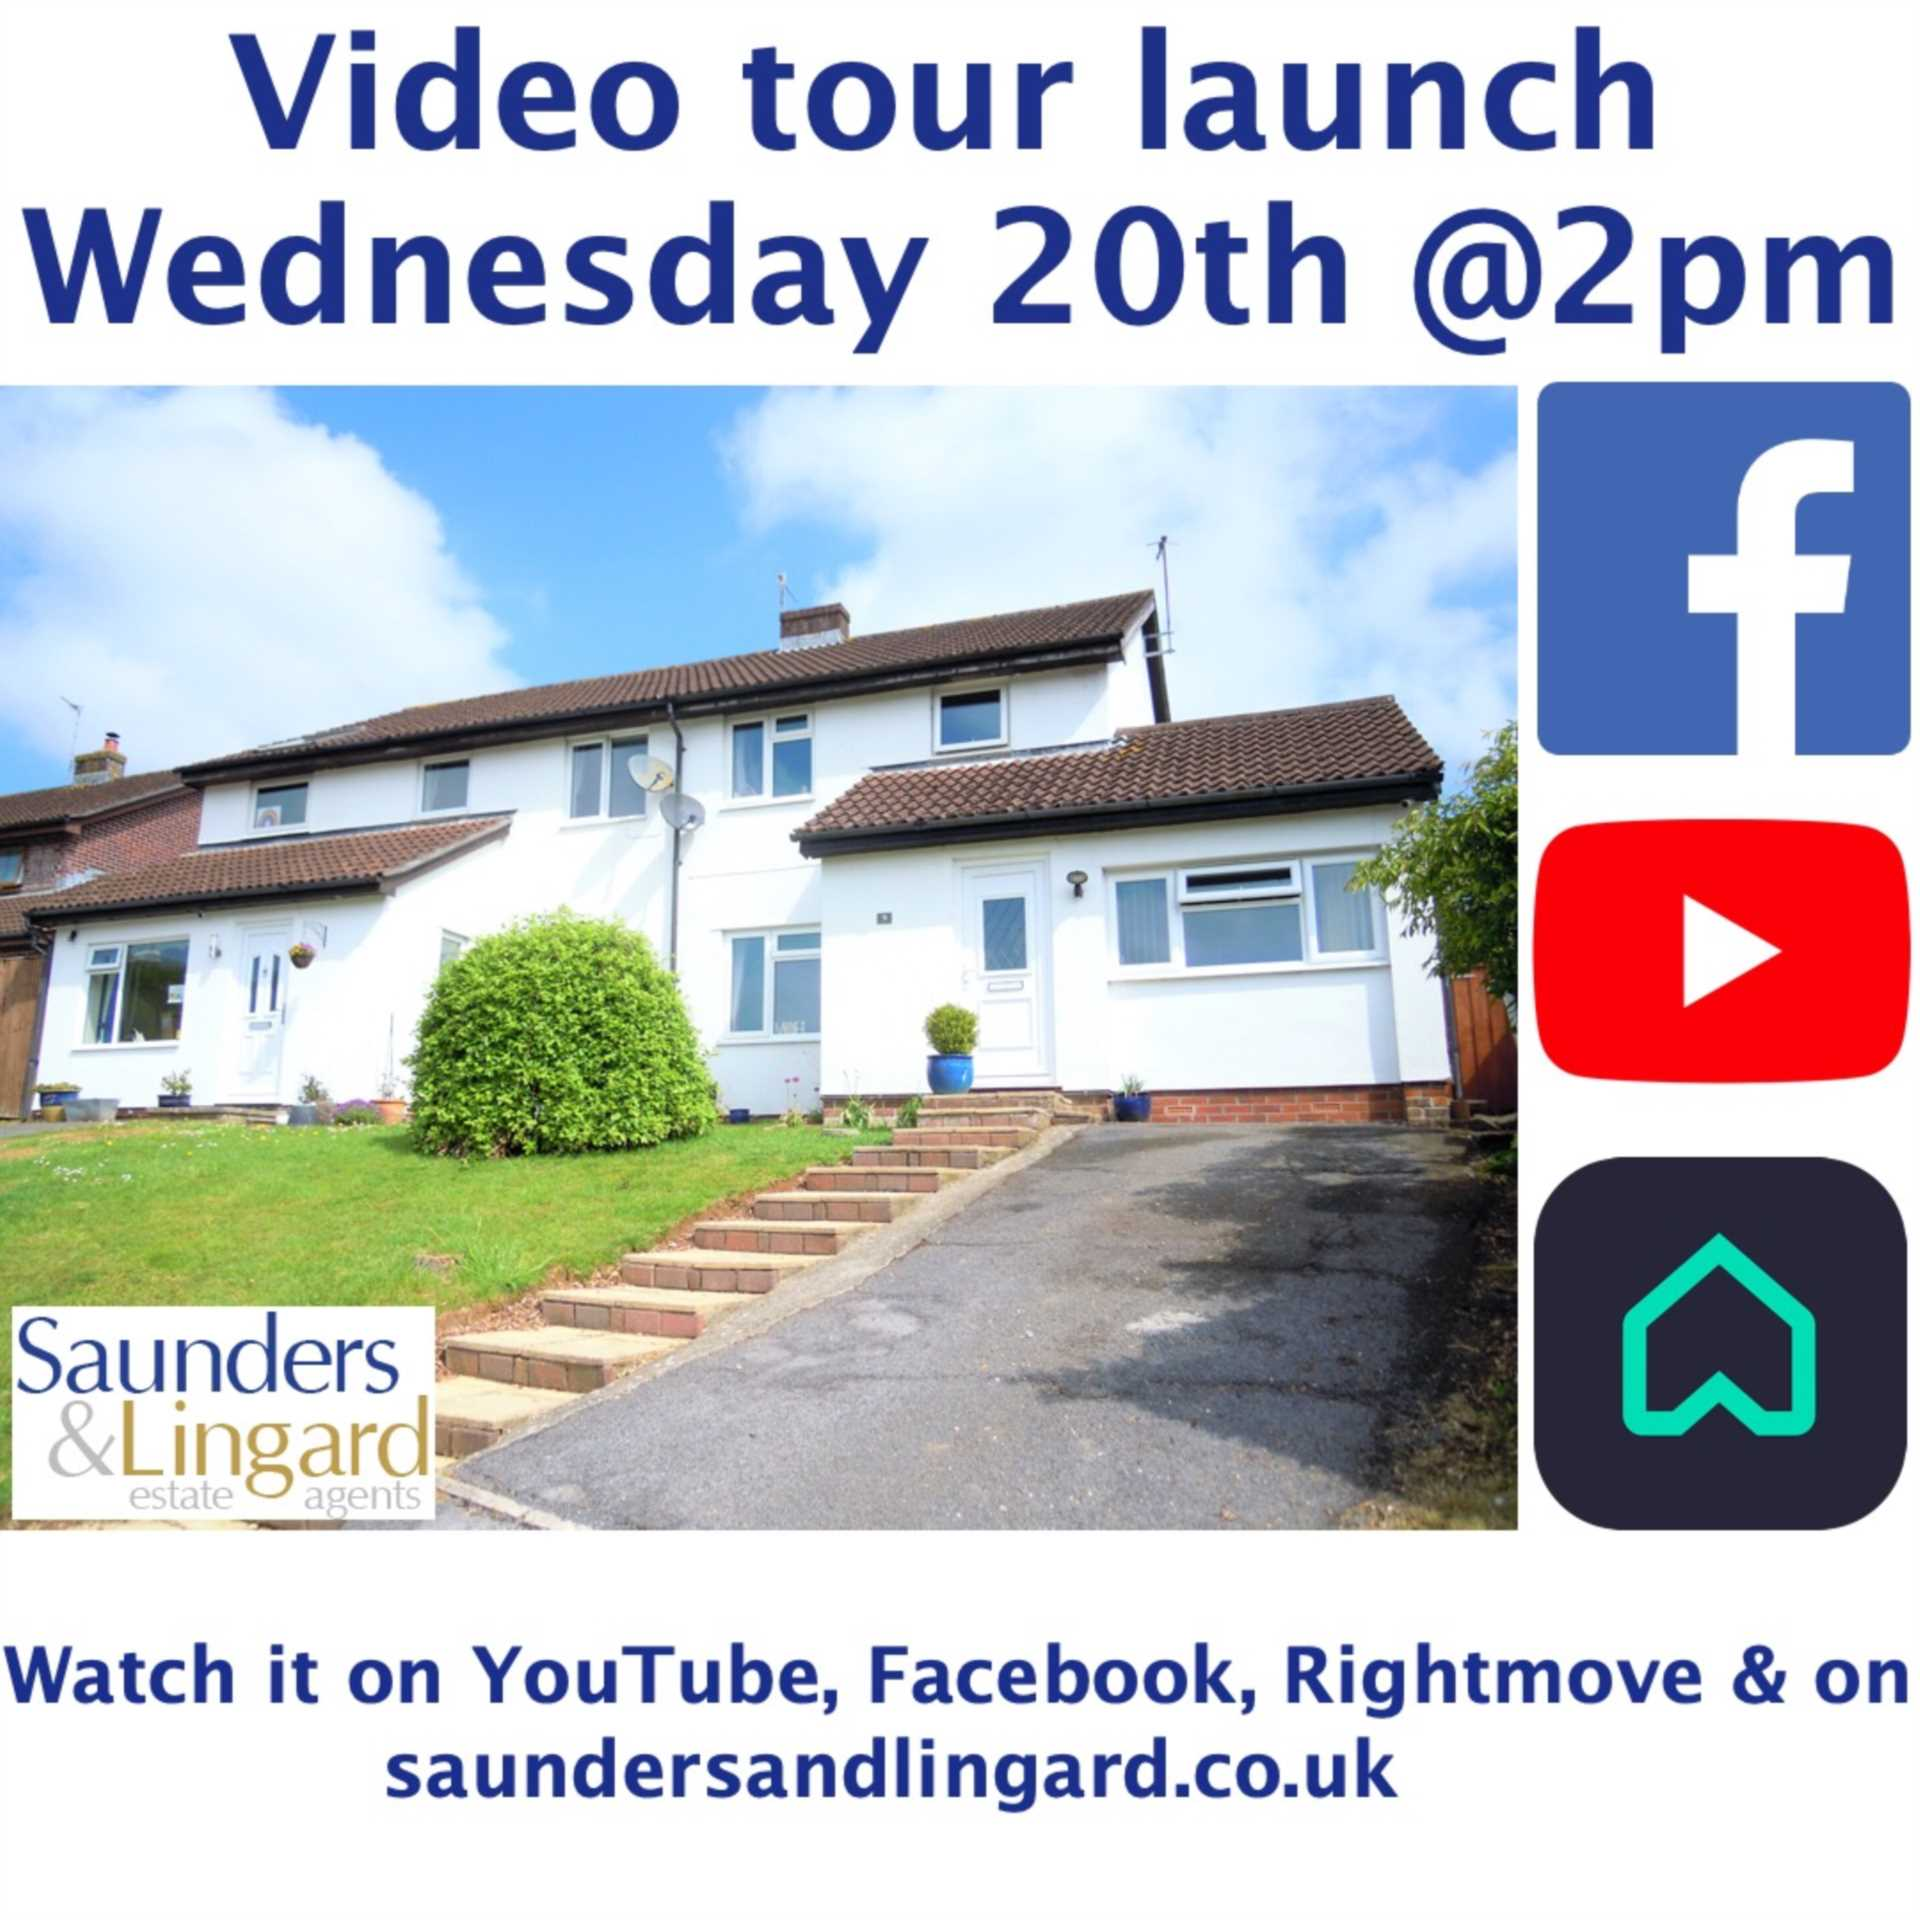 Video Tour Launch